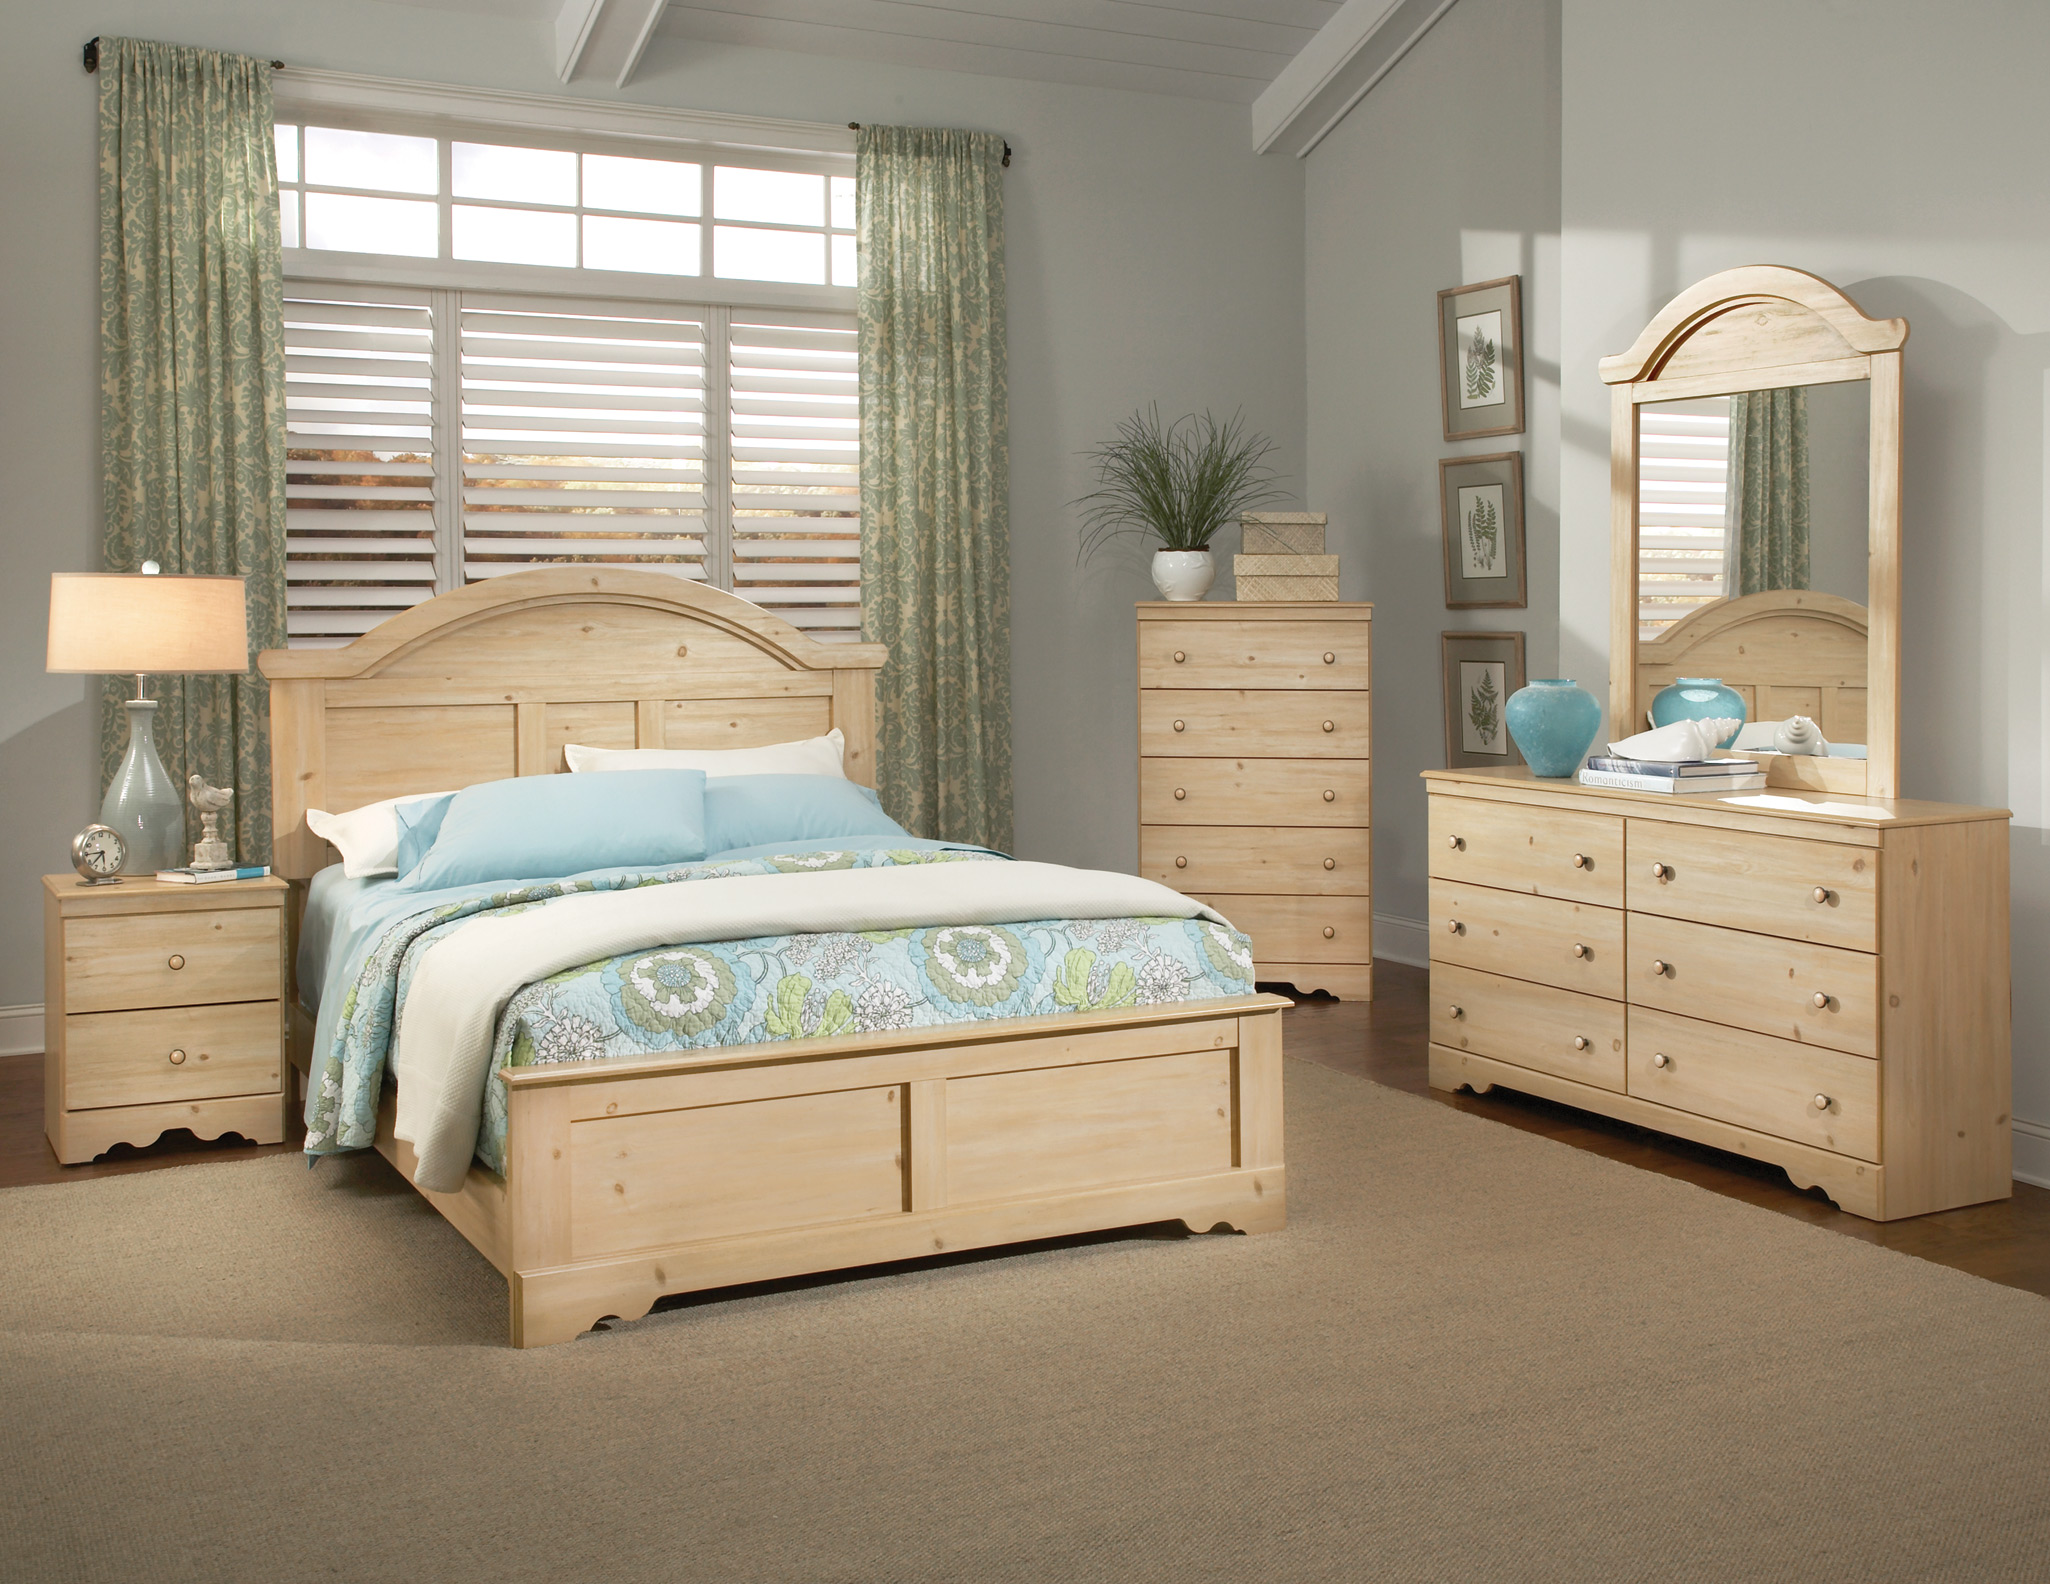 bedroom ideas with pine furniture photo - 10